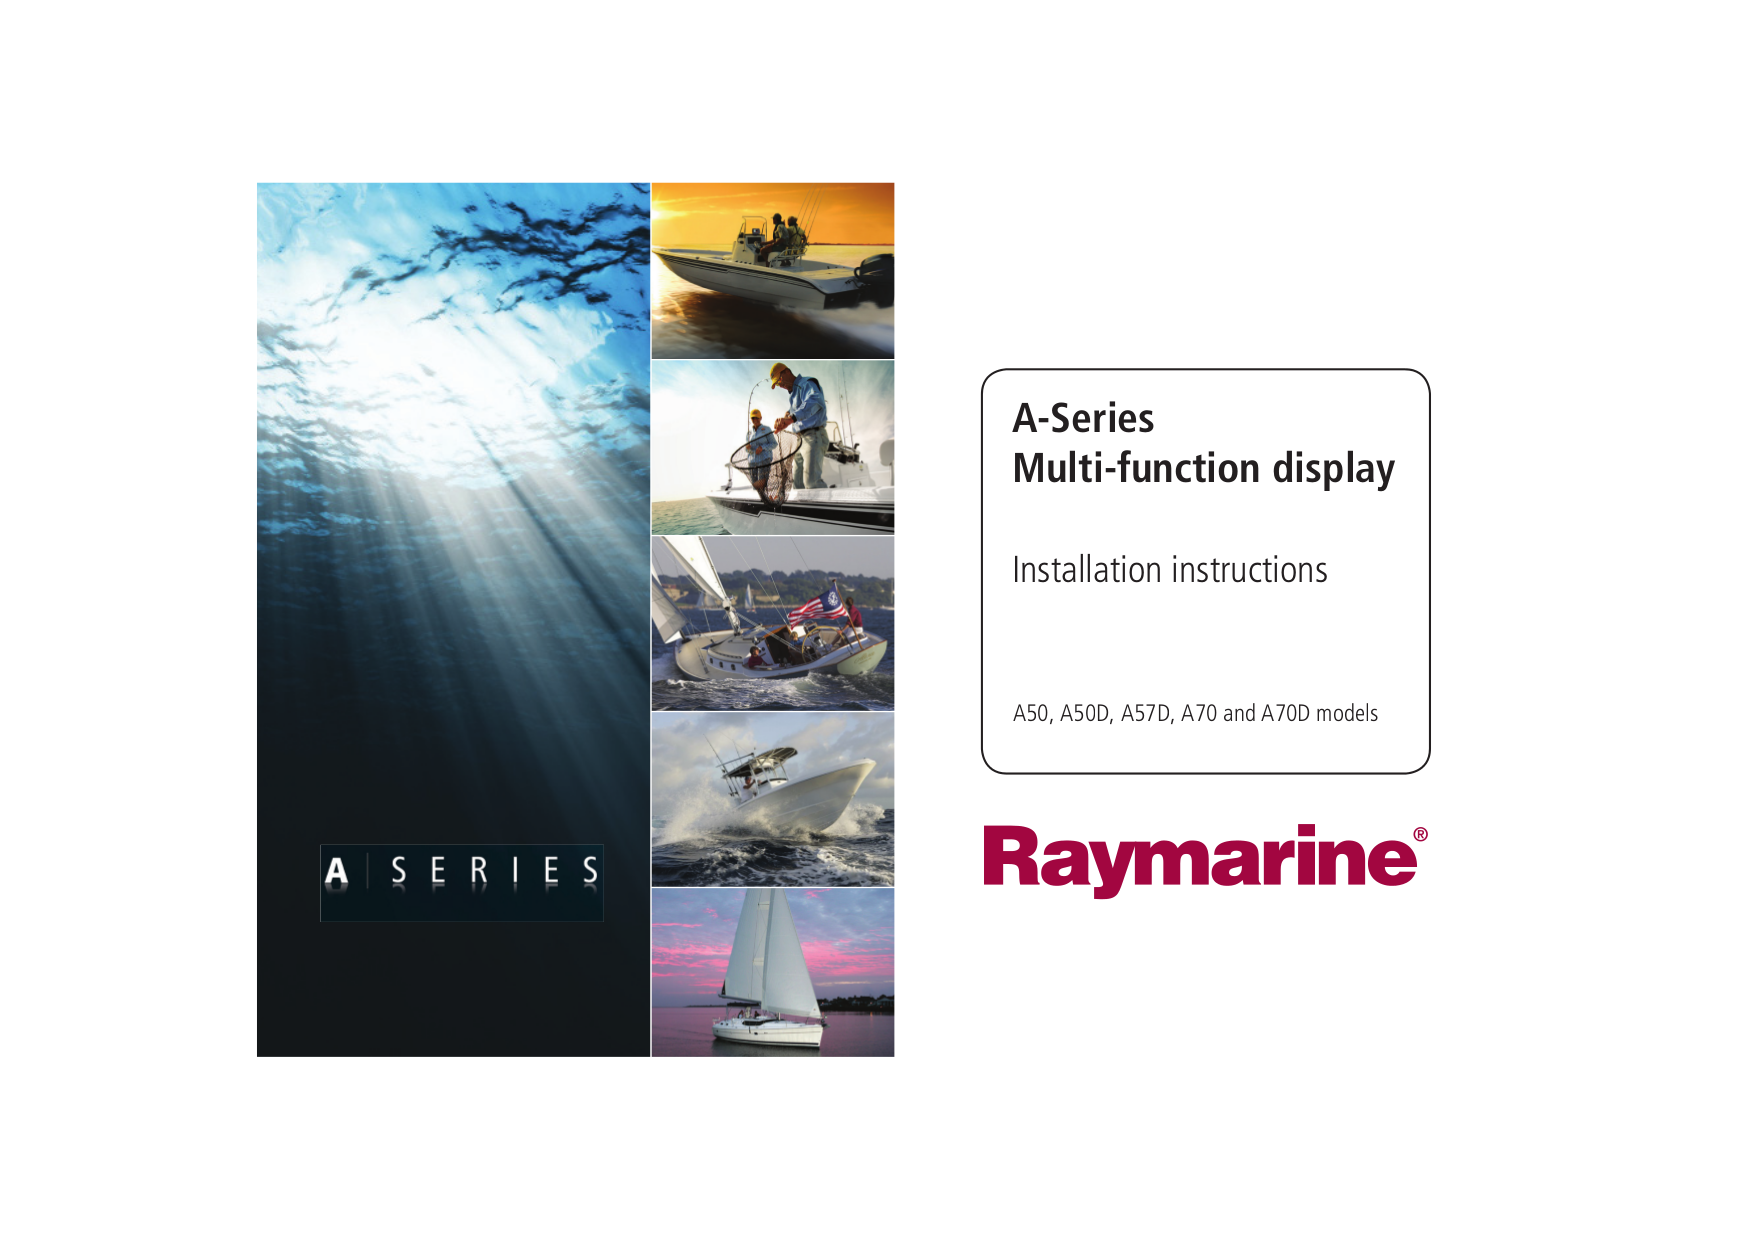 download free pdf for raymarine a series a70d gps manual rh umlib com raymarine dragonfly user guide raymarine radar user guide